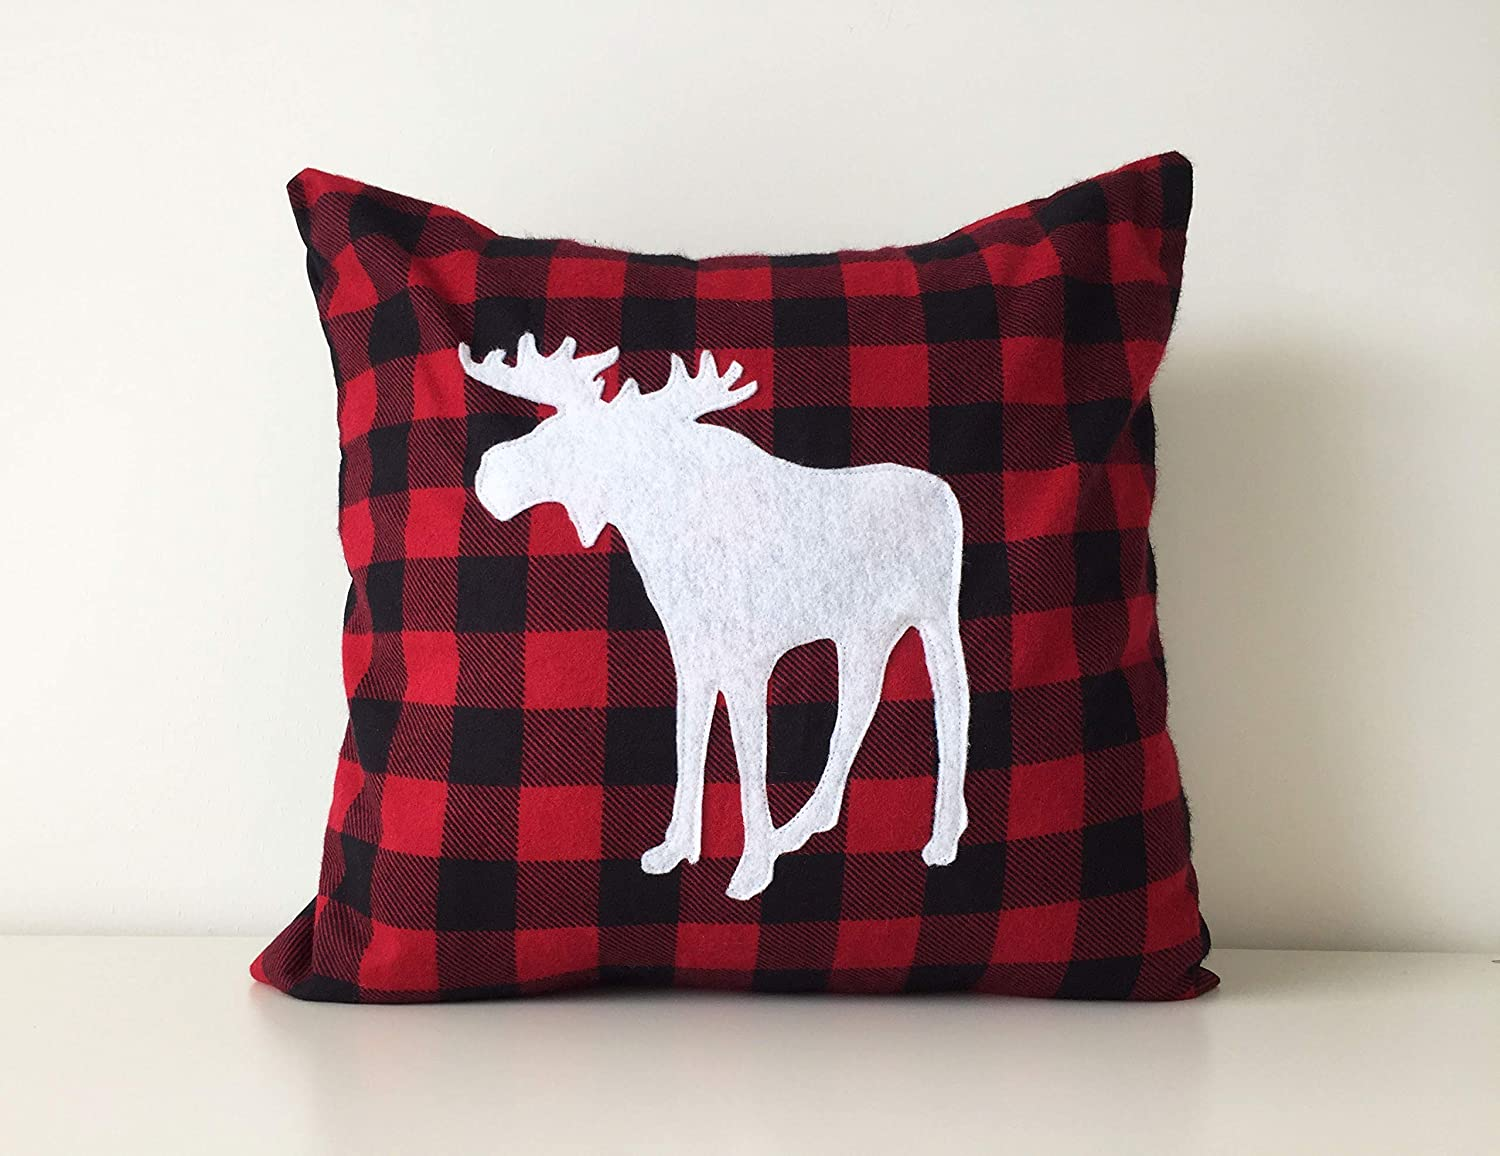 Flannel Moose Pillow Cover, Buffalo Plaid, Handmade, 16x16, Red, Black & White, Rustic Chic Decor 16x16